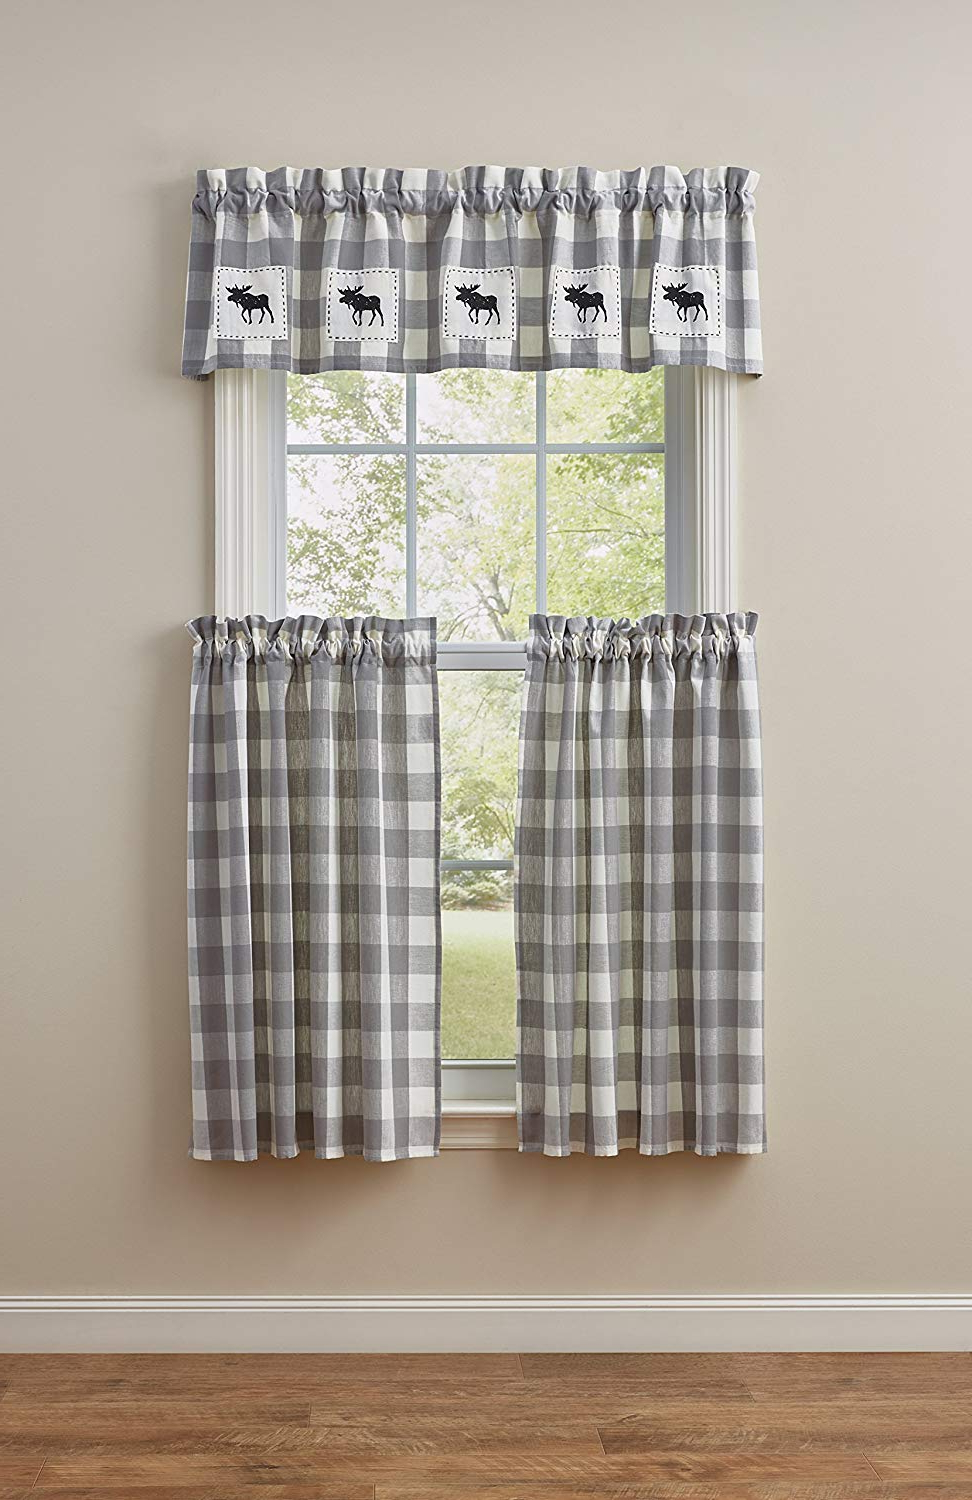 Wicklow Gray & White Check Tier Curtain Pair, 72w X 36l, Dove For Most Up To Date Dove Gray Curtain Tier Pairs (View 8 of 20)